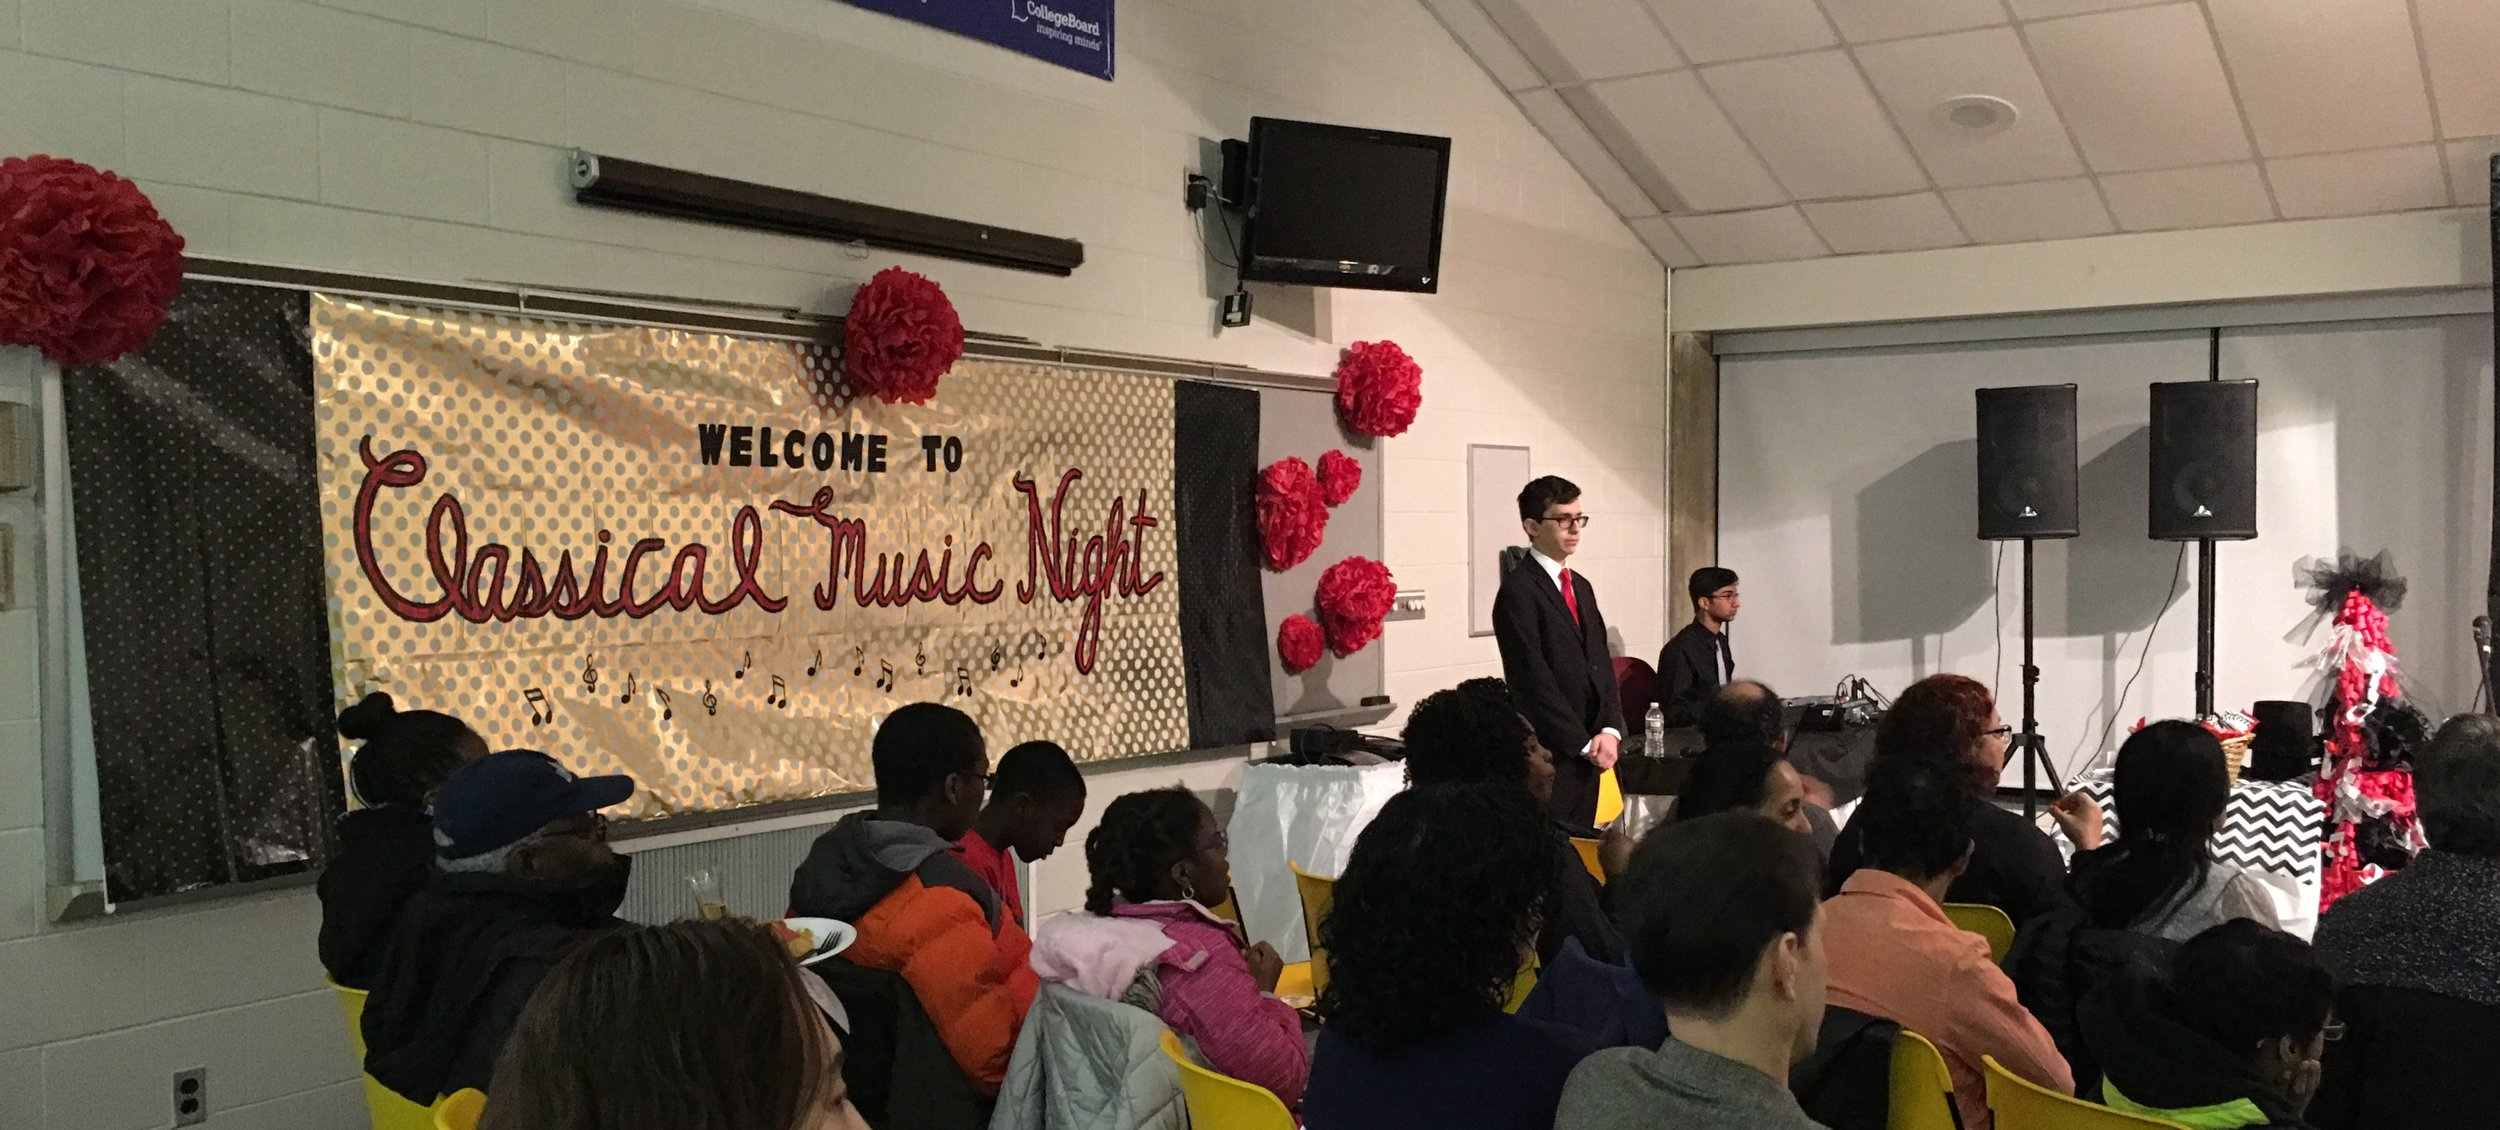 classical_music_night_welcome_sign_2_2017.jpg